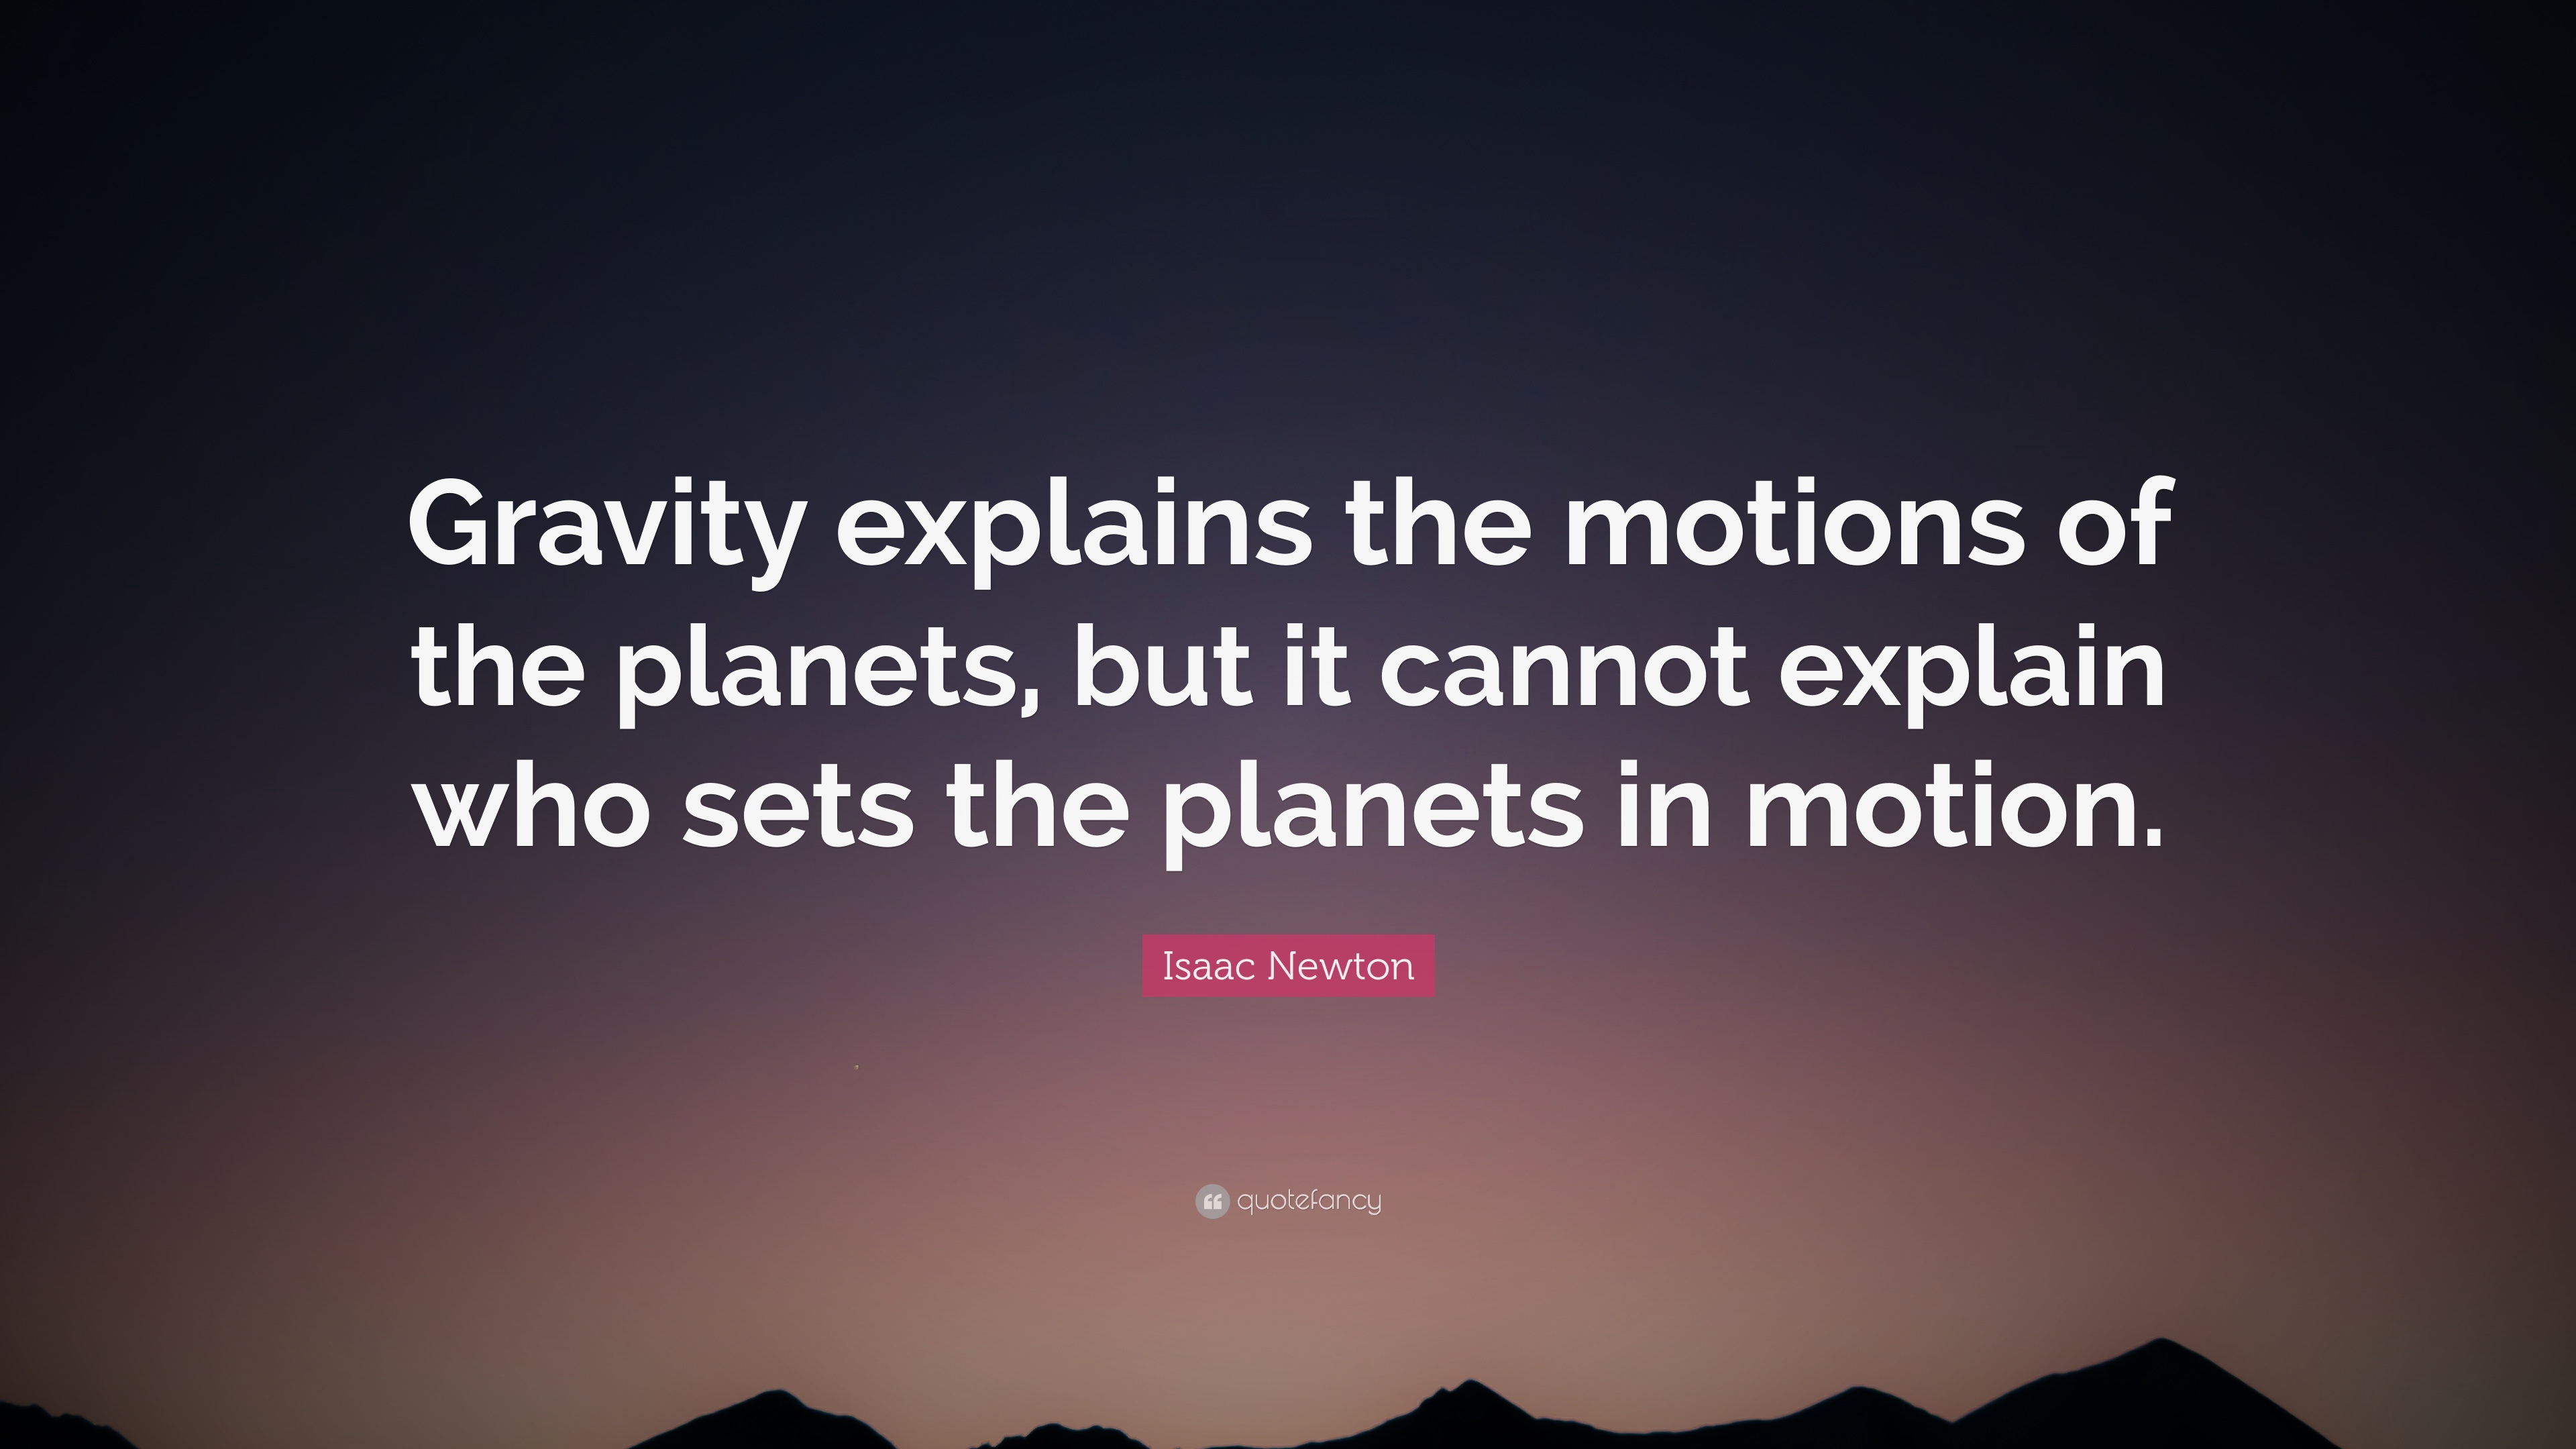 Isaac Newton Quotes | Isaac Newton Quote Gravity Explains The Motions Of The Planets